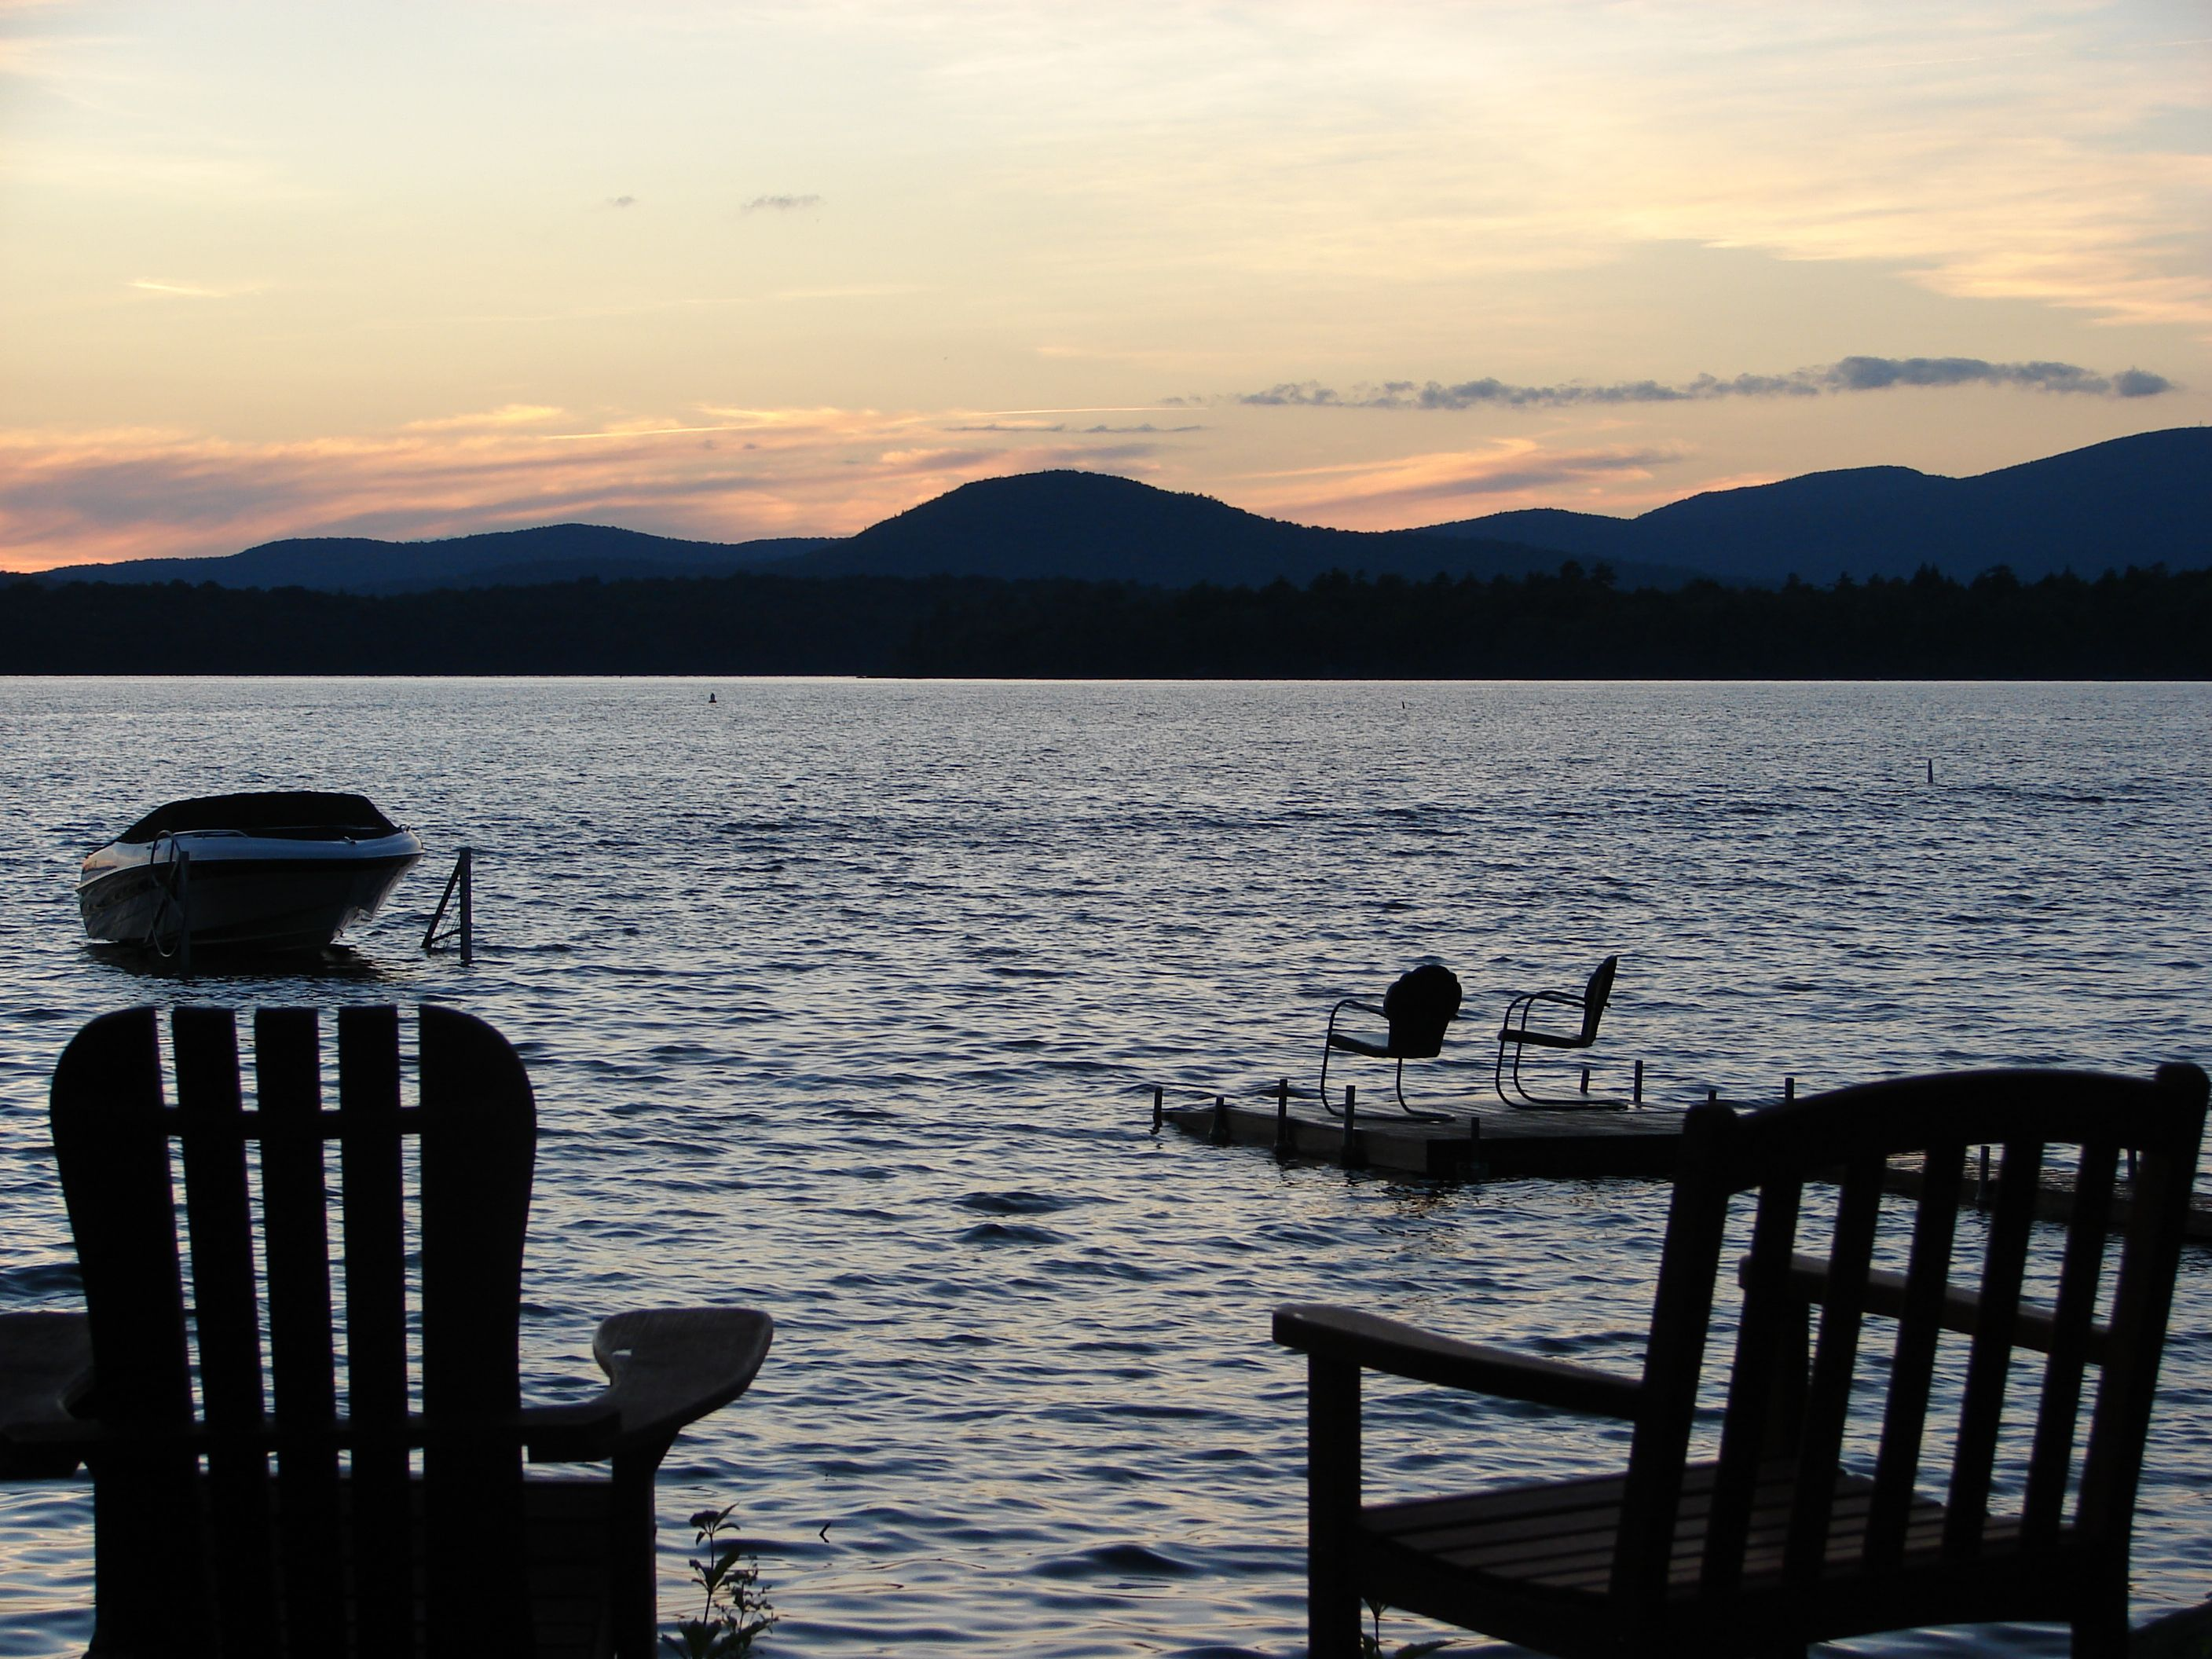 state upstate lakefront for rent rental cabin in ithaca ny parks aichger cabins